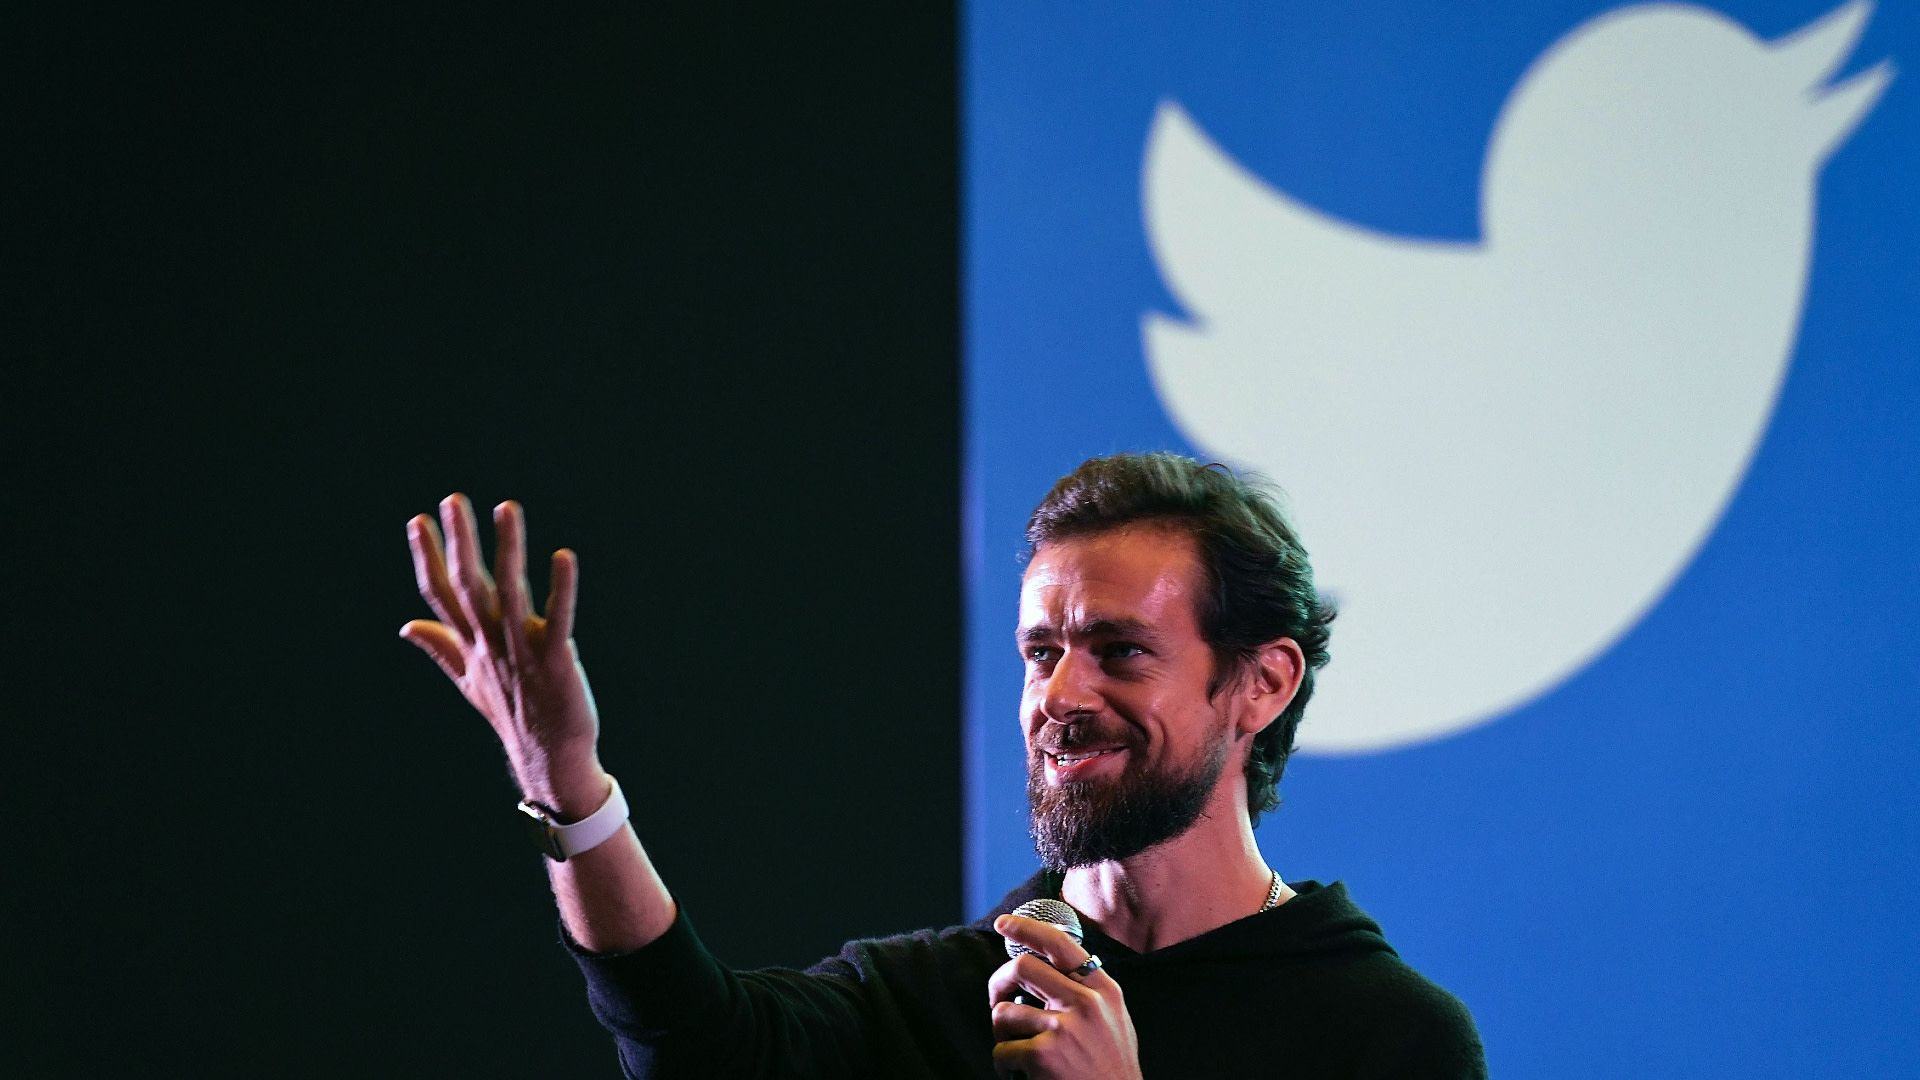 Twitter CEO Jack Dorsey Selling His First Ever Tweet As An NFT, Bids Reach USD 2.5 Million